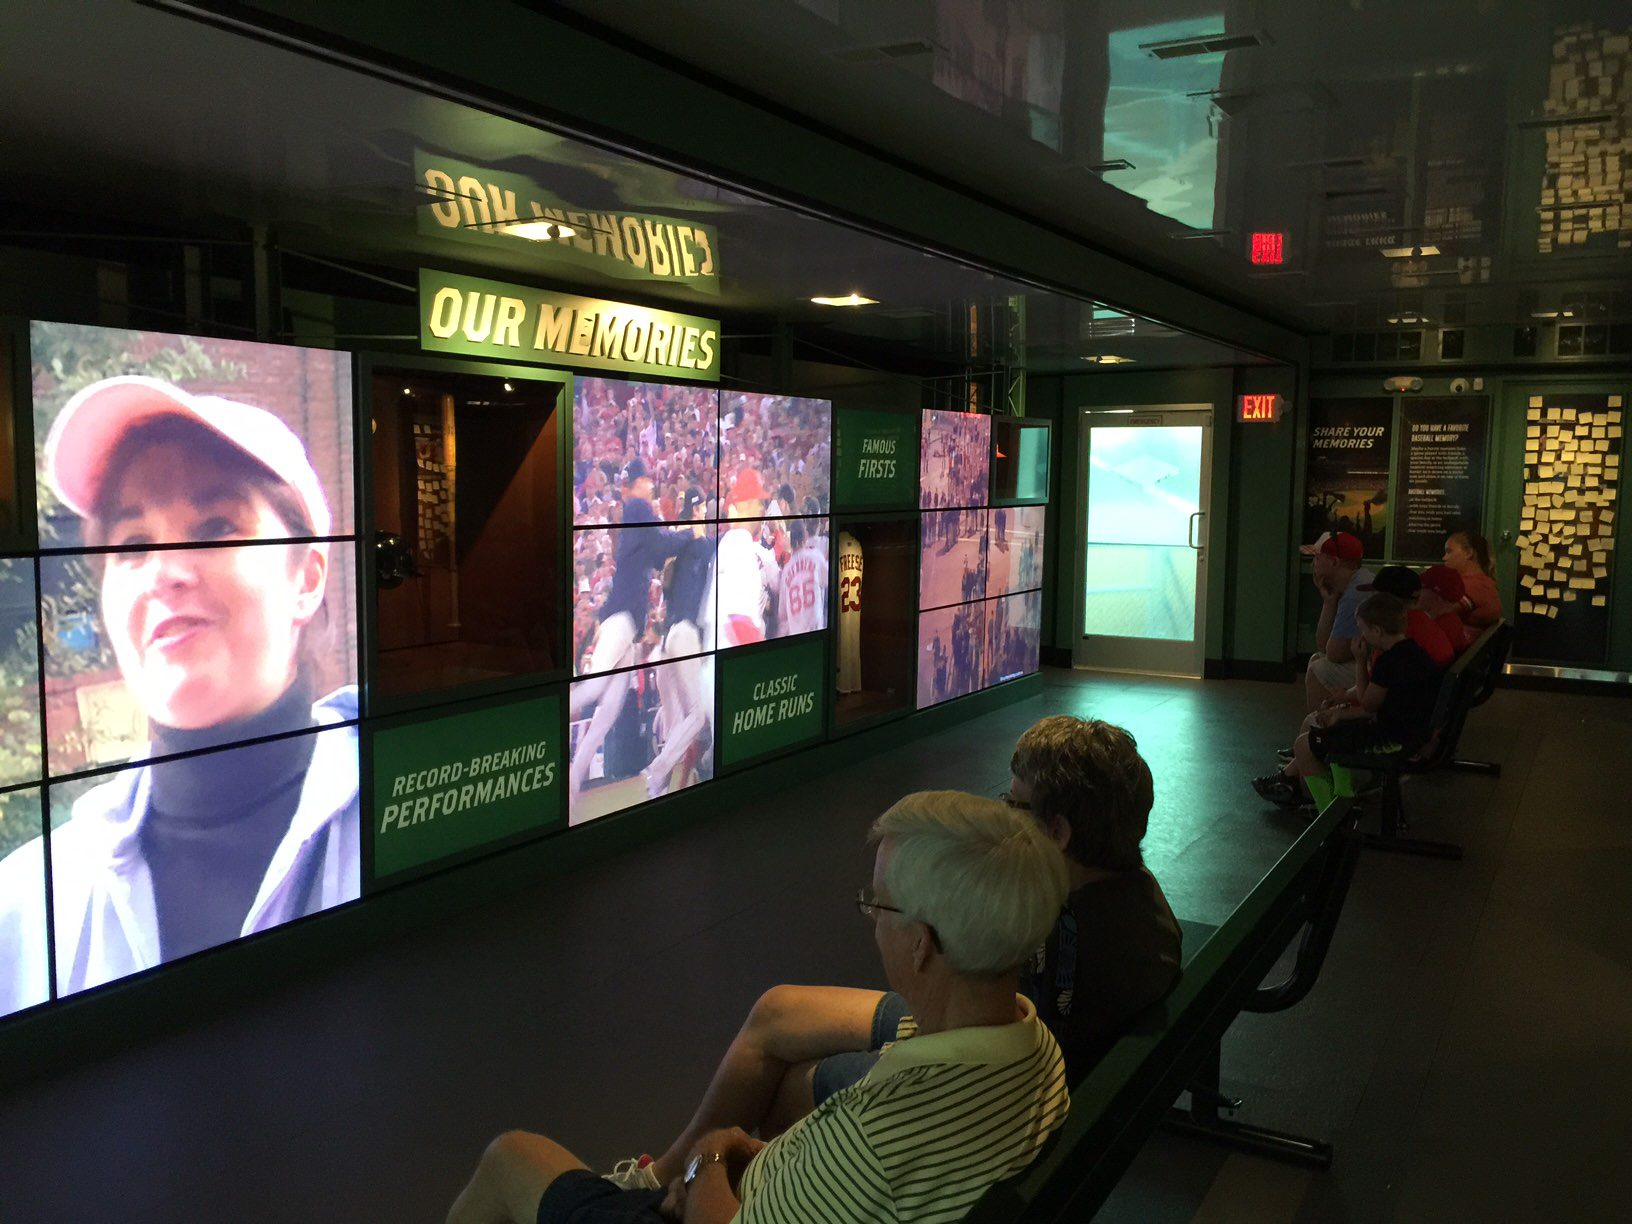 A number of interactive exhibits and films are available for viewing at the Hall of Fame exhibit in Davenport.